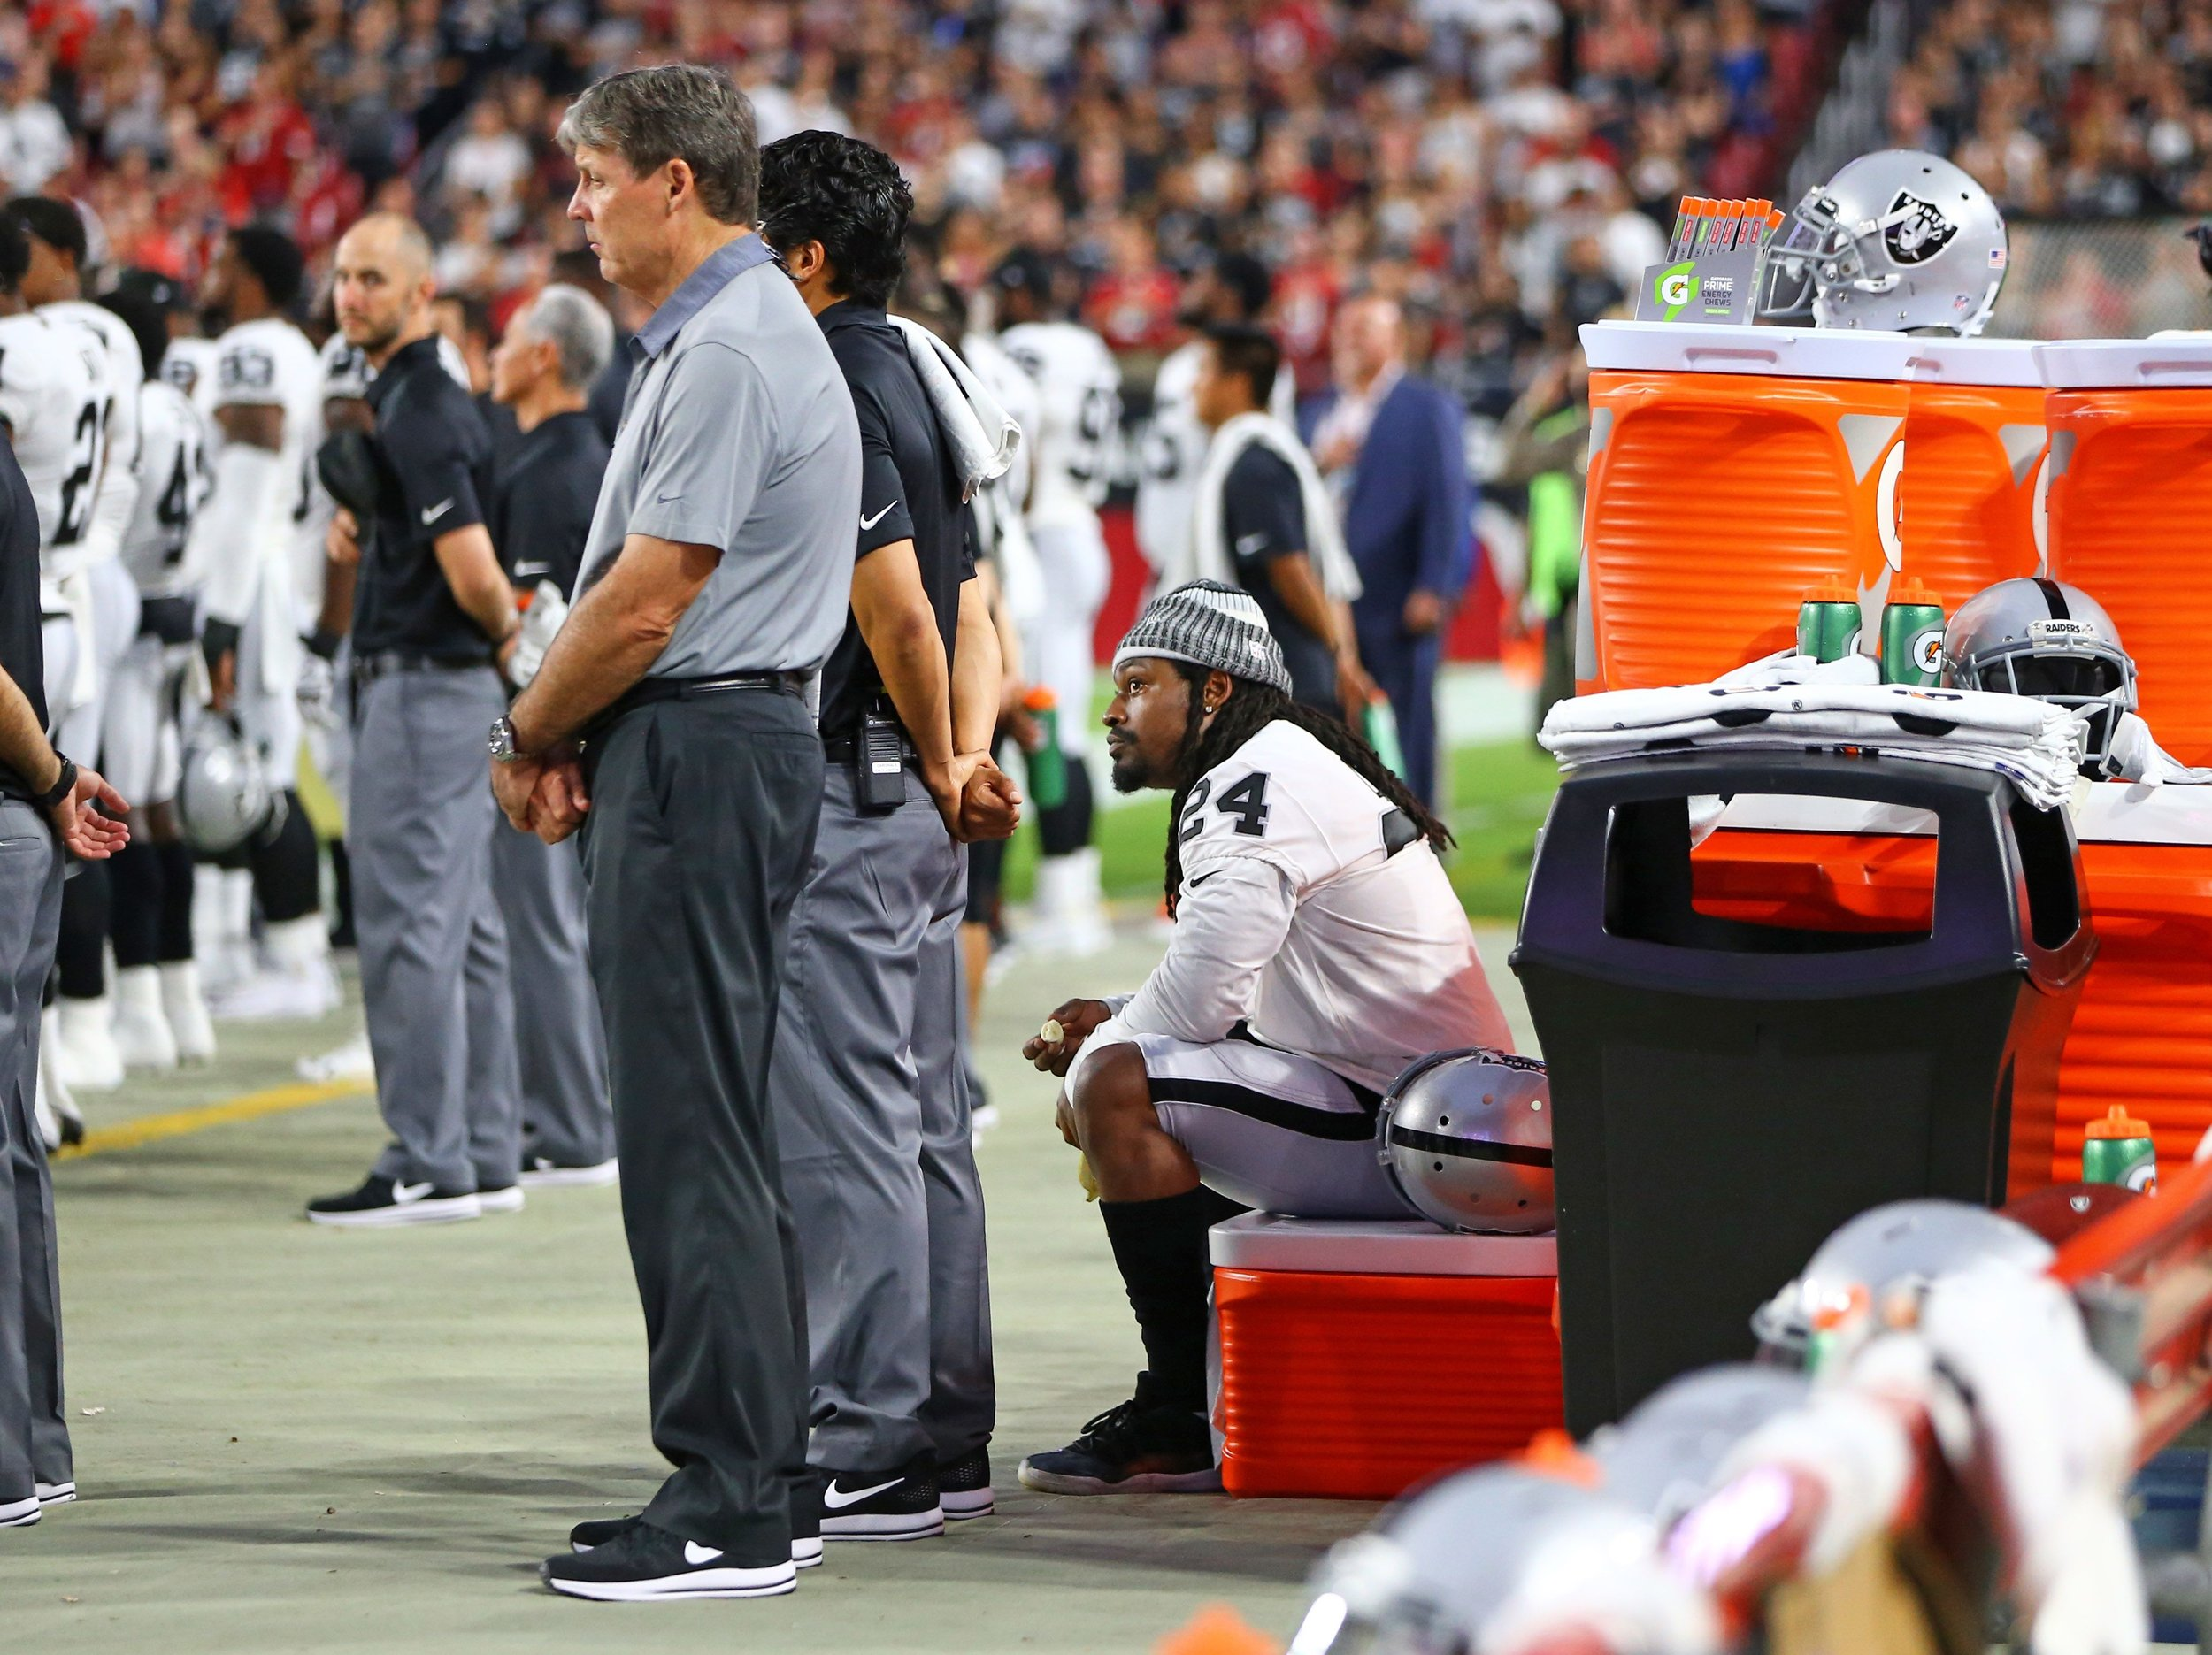 Marshawn Lynch has been among the large population of NFL players to stay seated for the National Anthem.